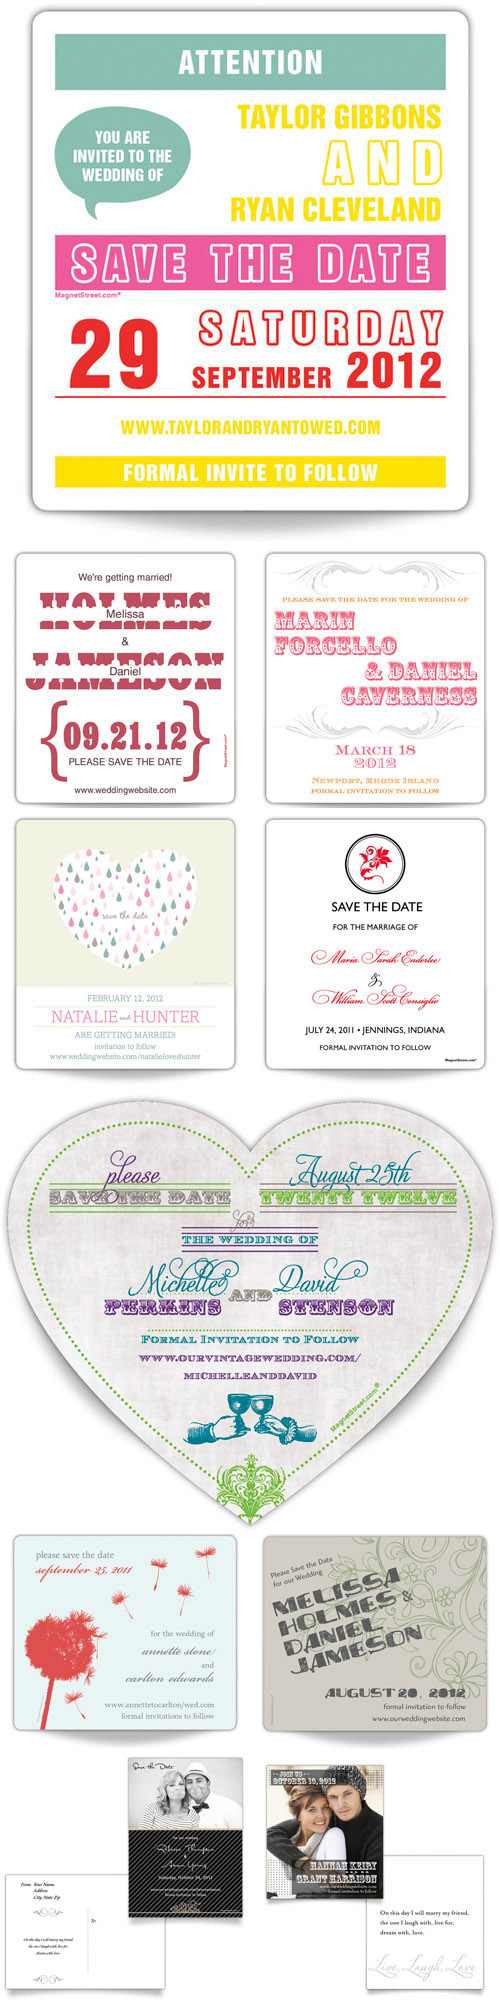 wedding save the dates by Magnet Street Weddings